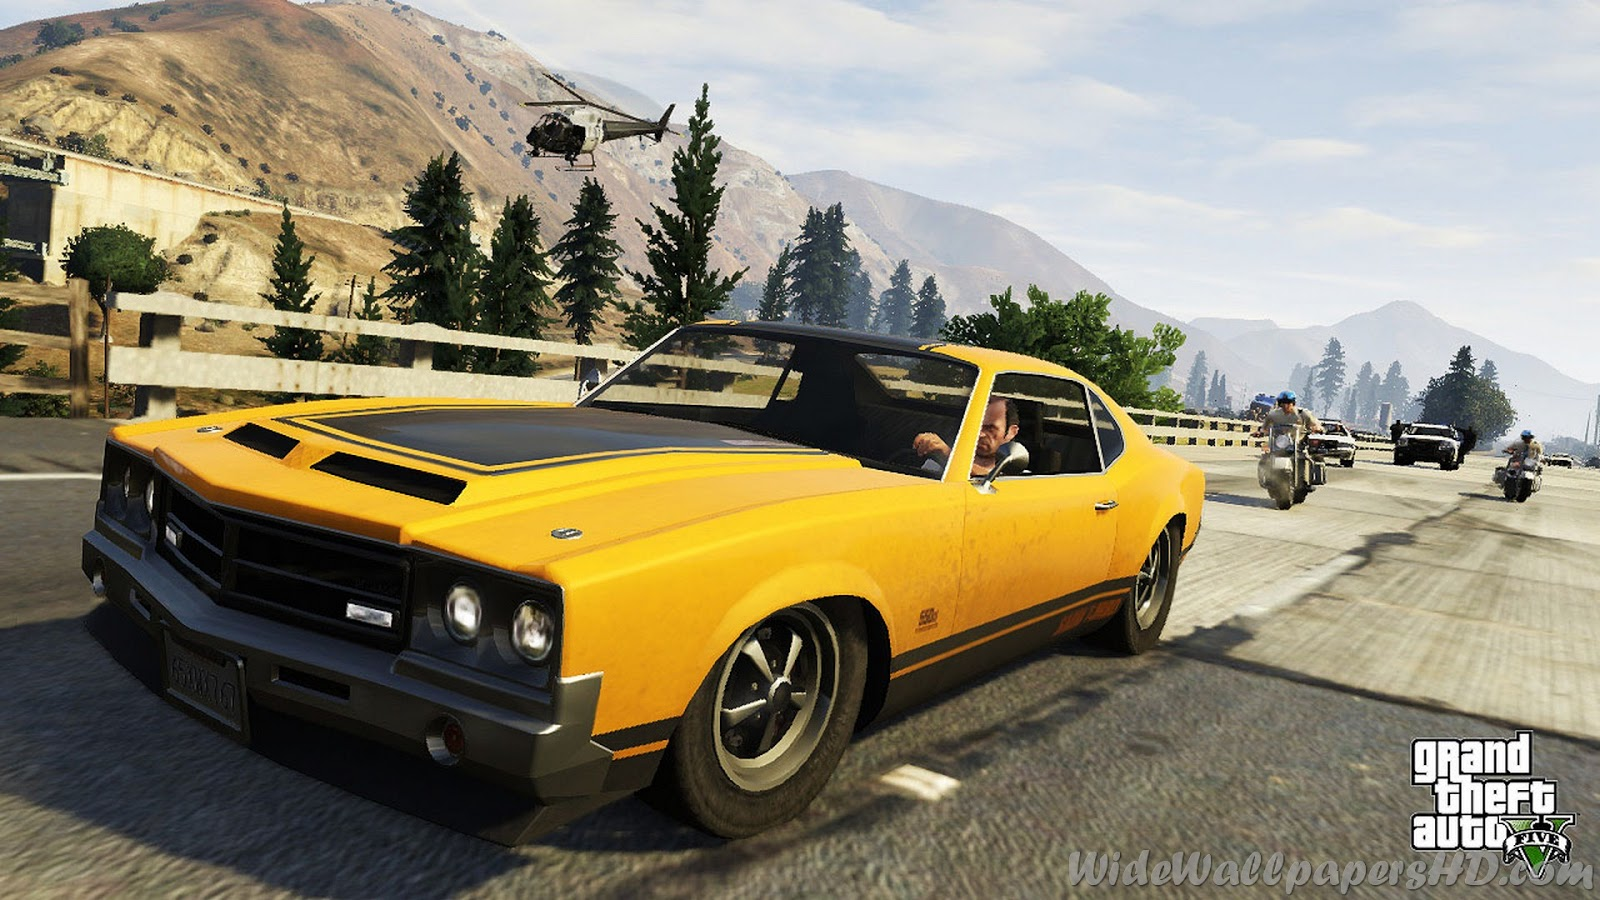 Customized Muscle Cars Games